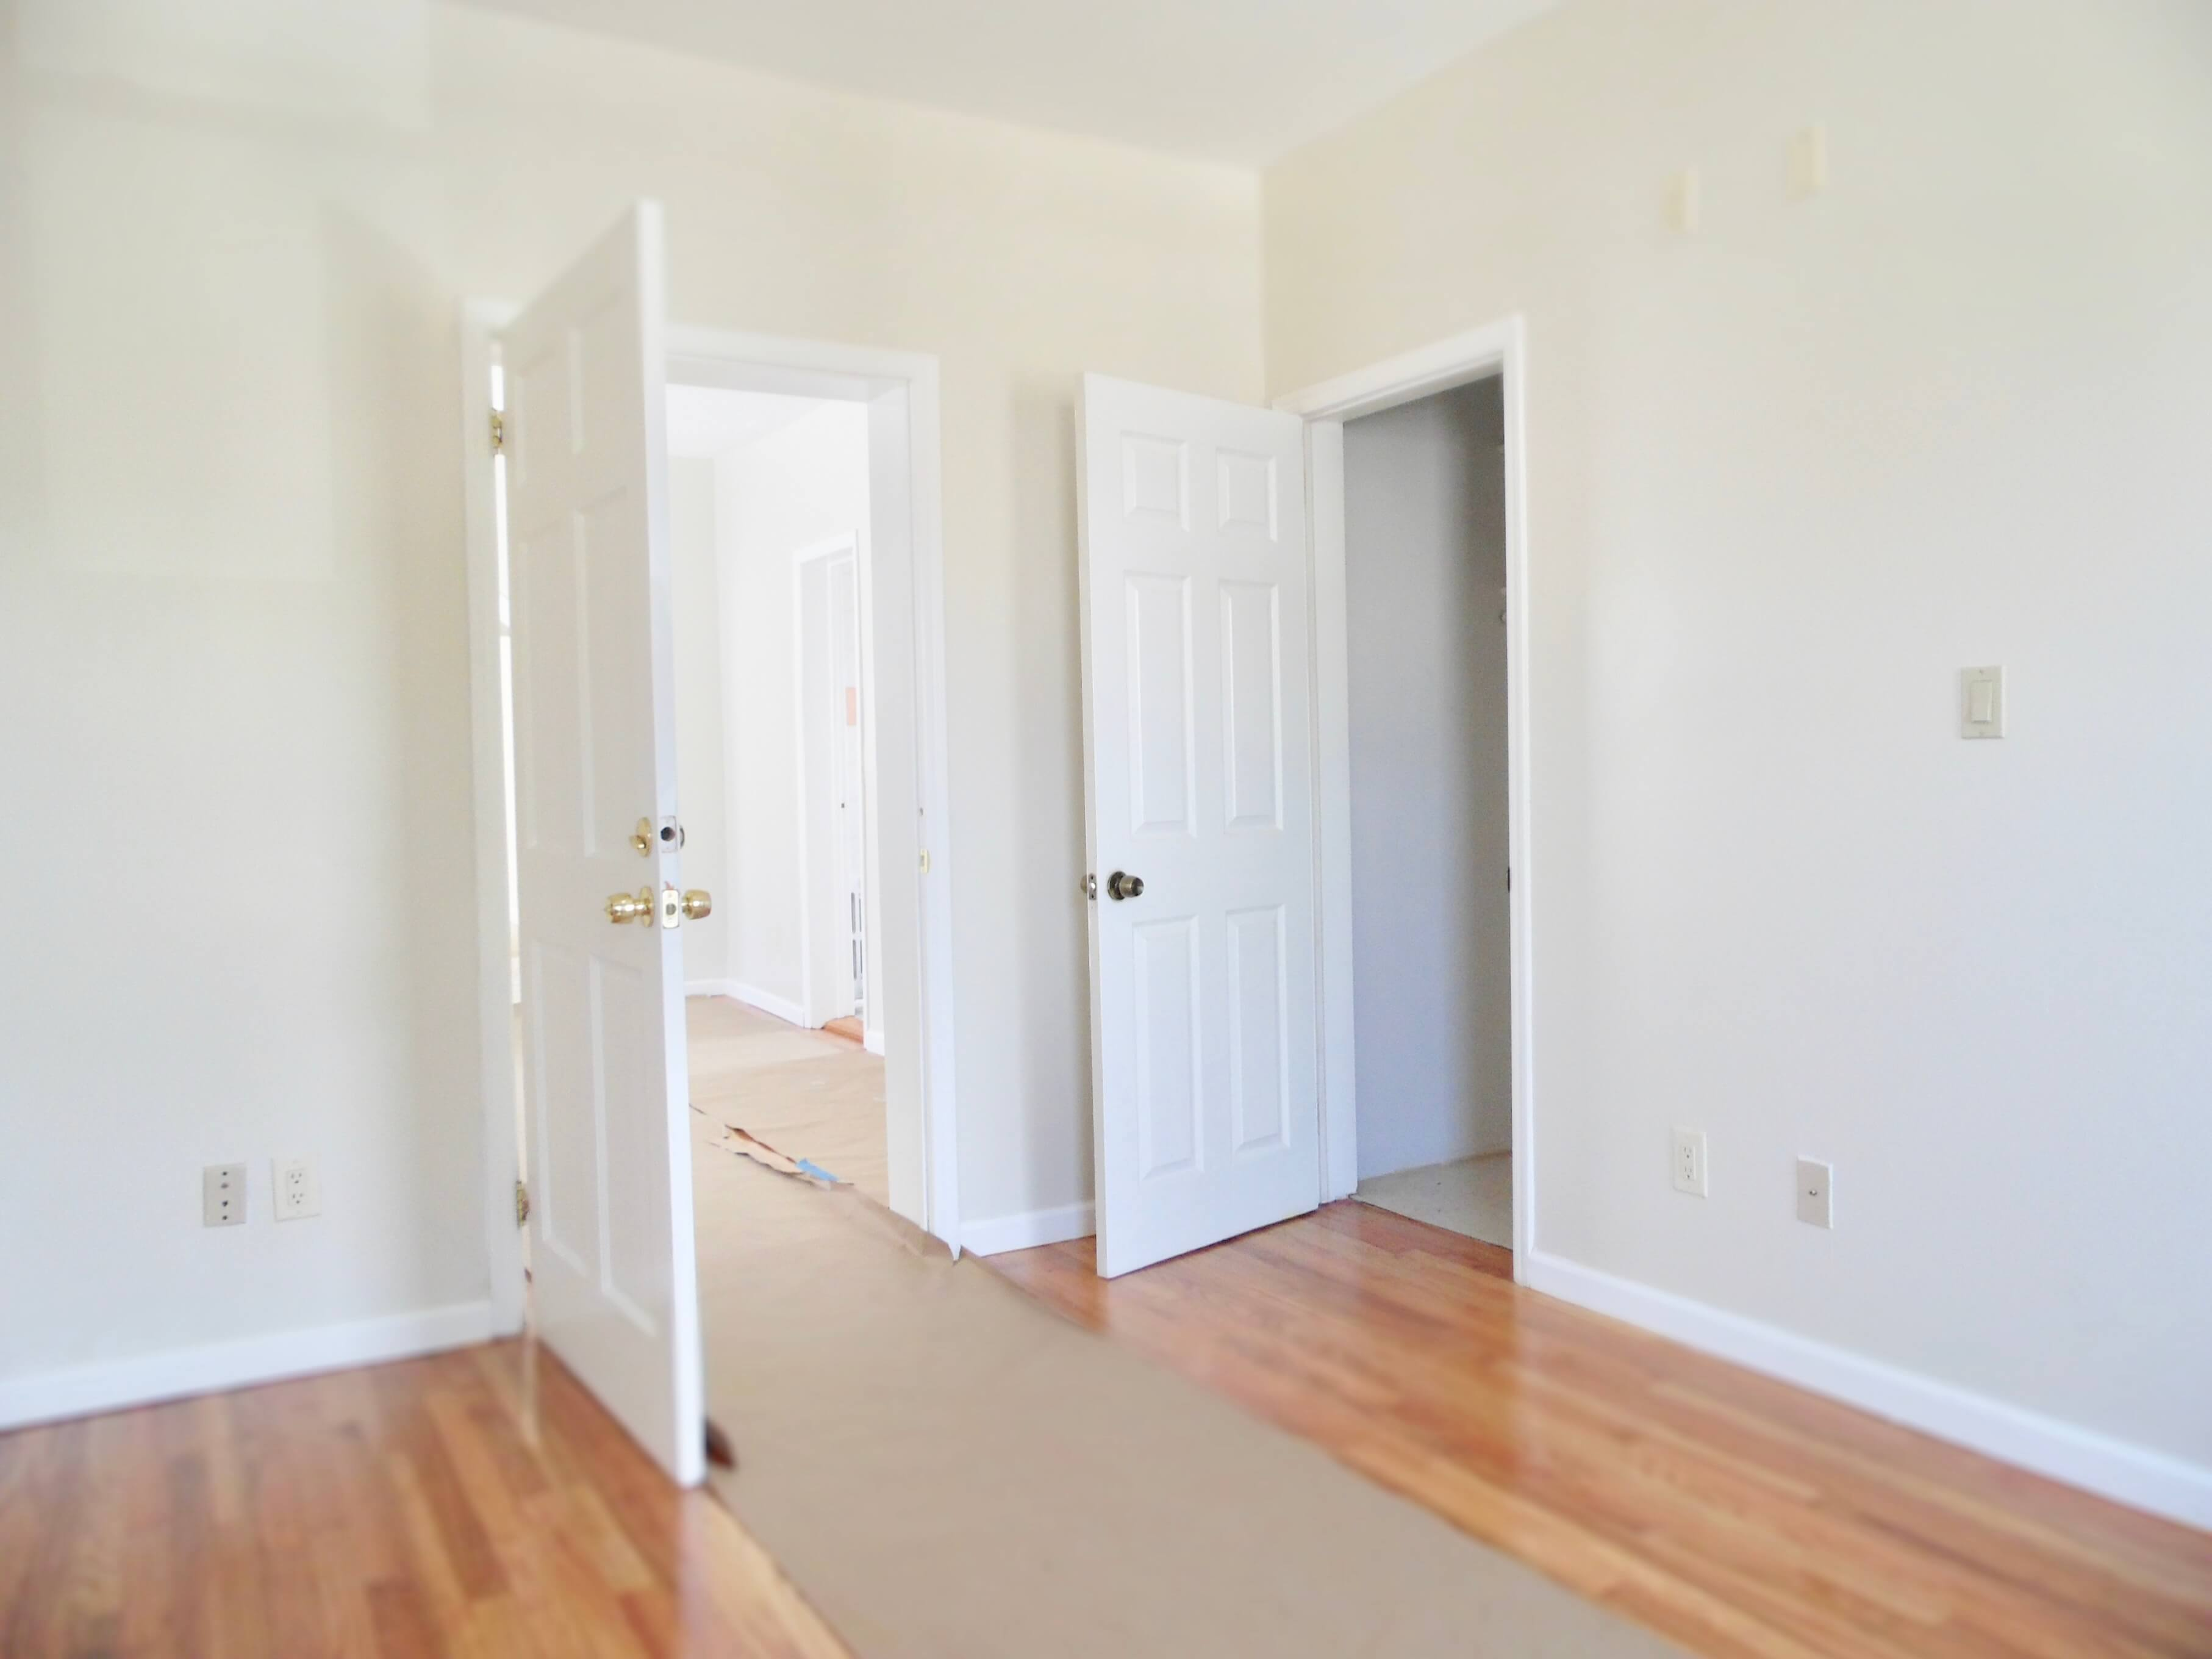 One bedroom apartments in canarsie 28 images 1 bedroom 2 bedroom apartments for rent in canarsie